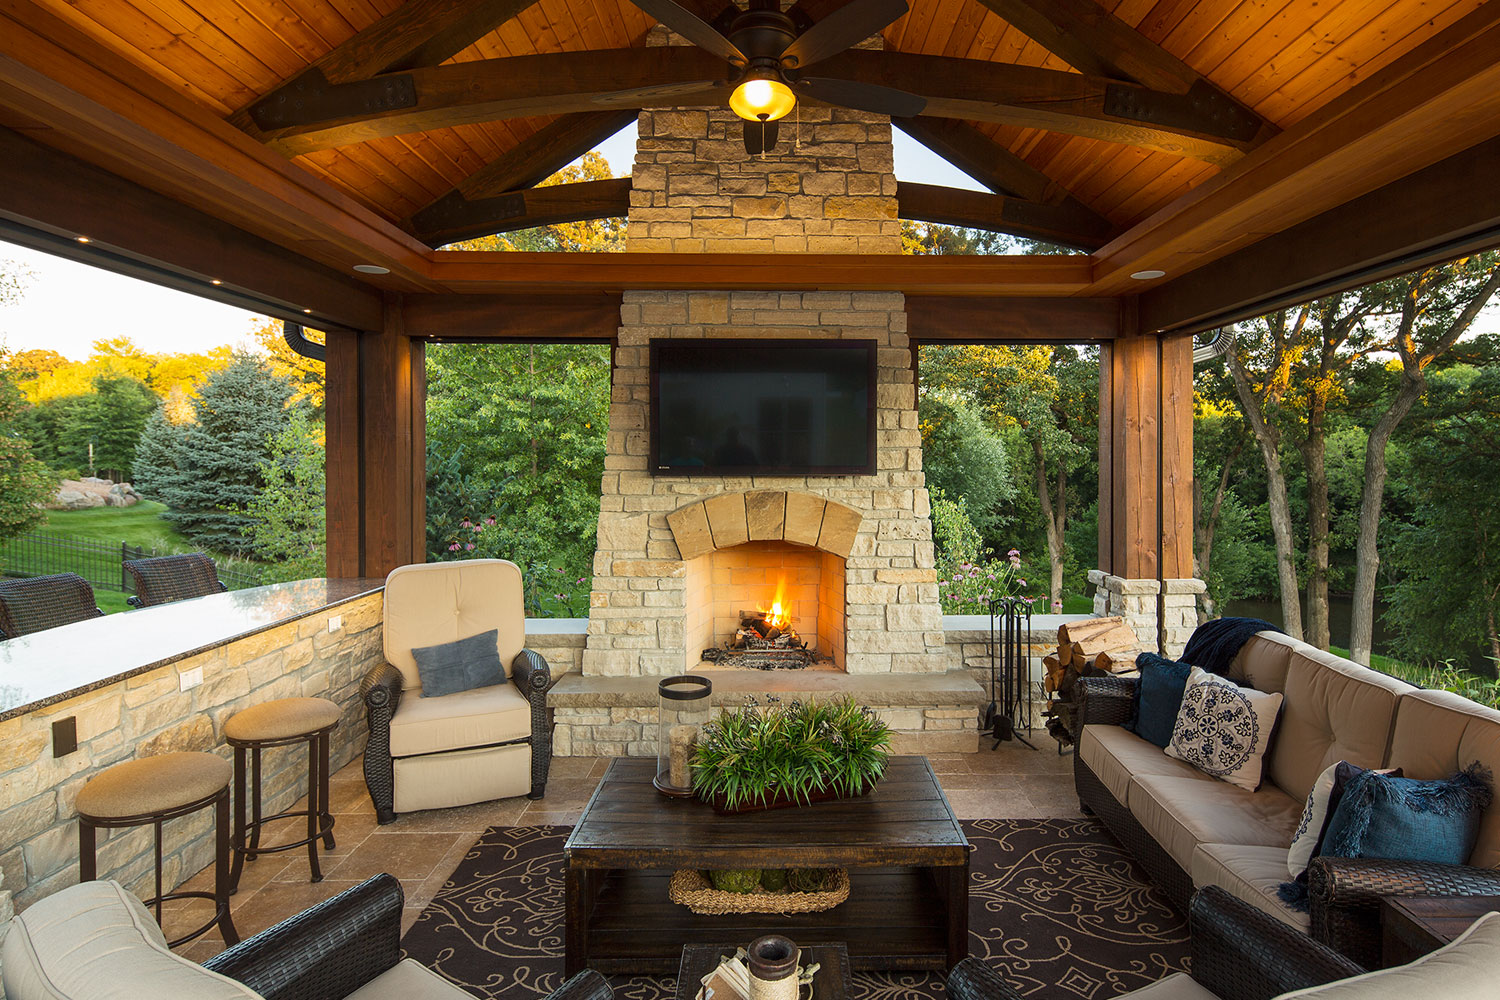 Outdoor Living Room with Stone Fireplace and Travertine Floor